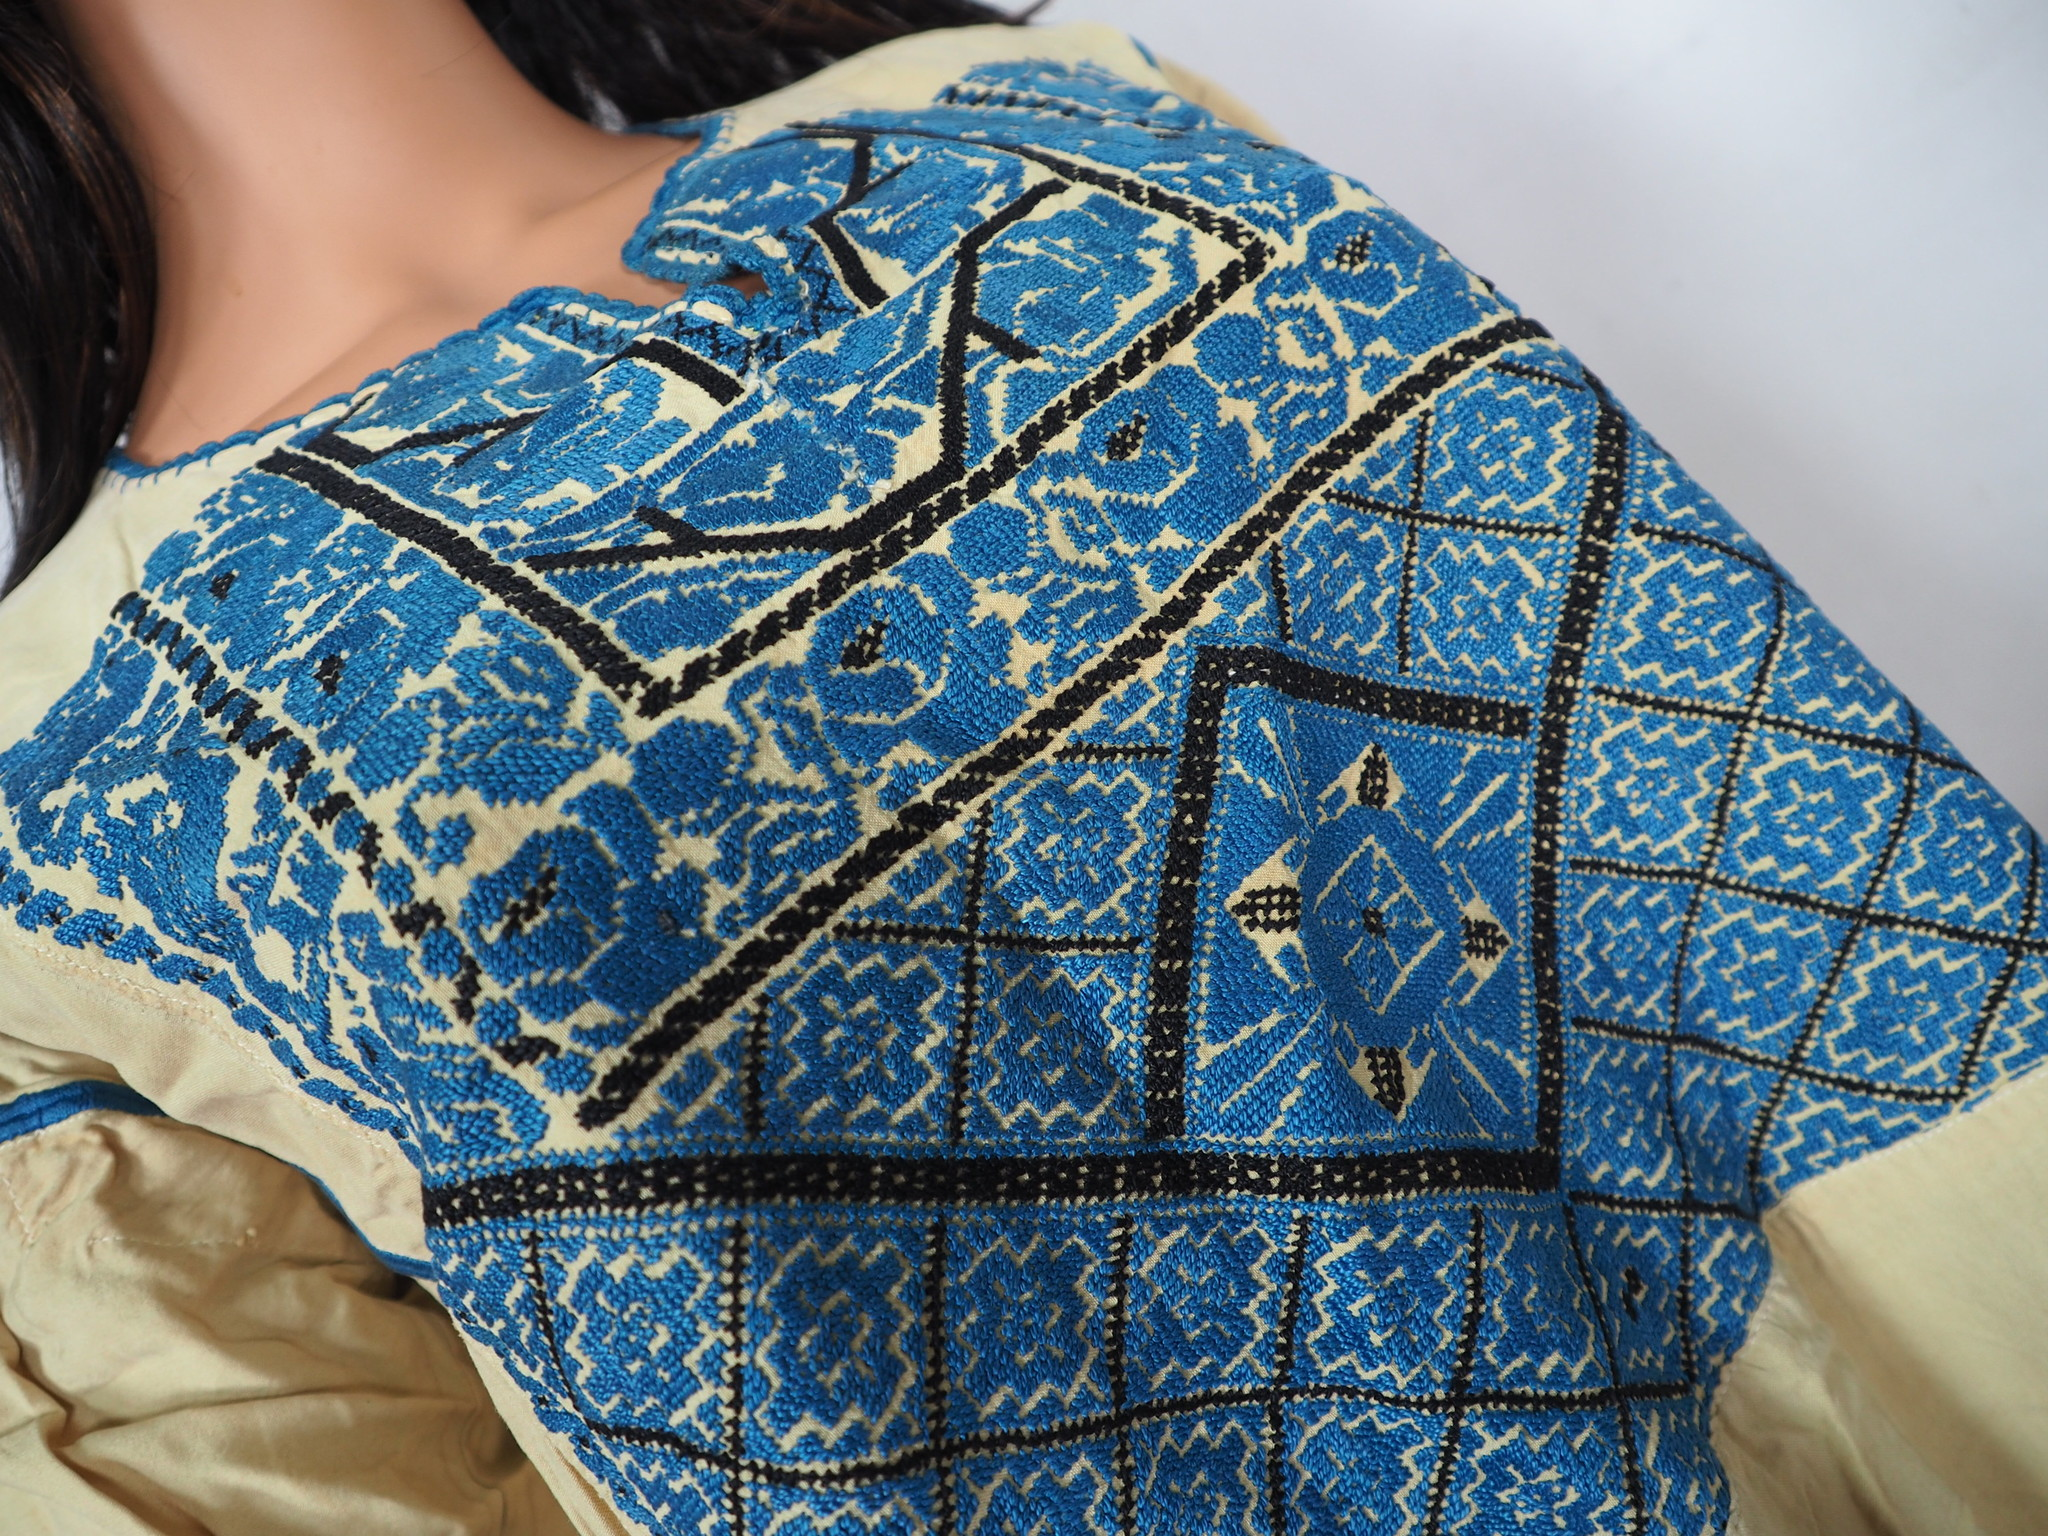 Palestinian girls embroidered ethnic dress No:9